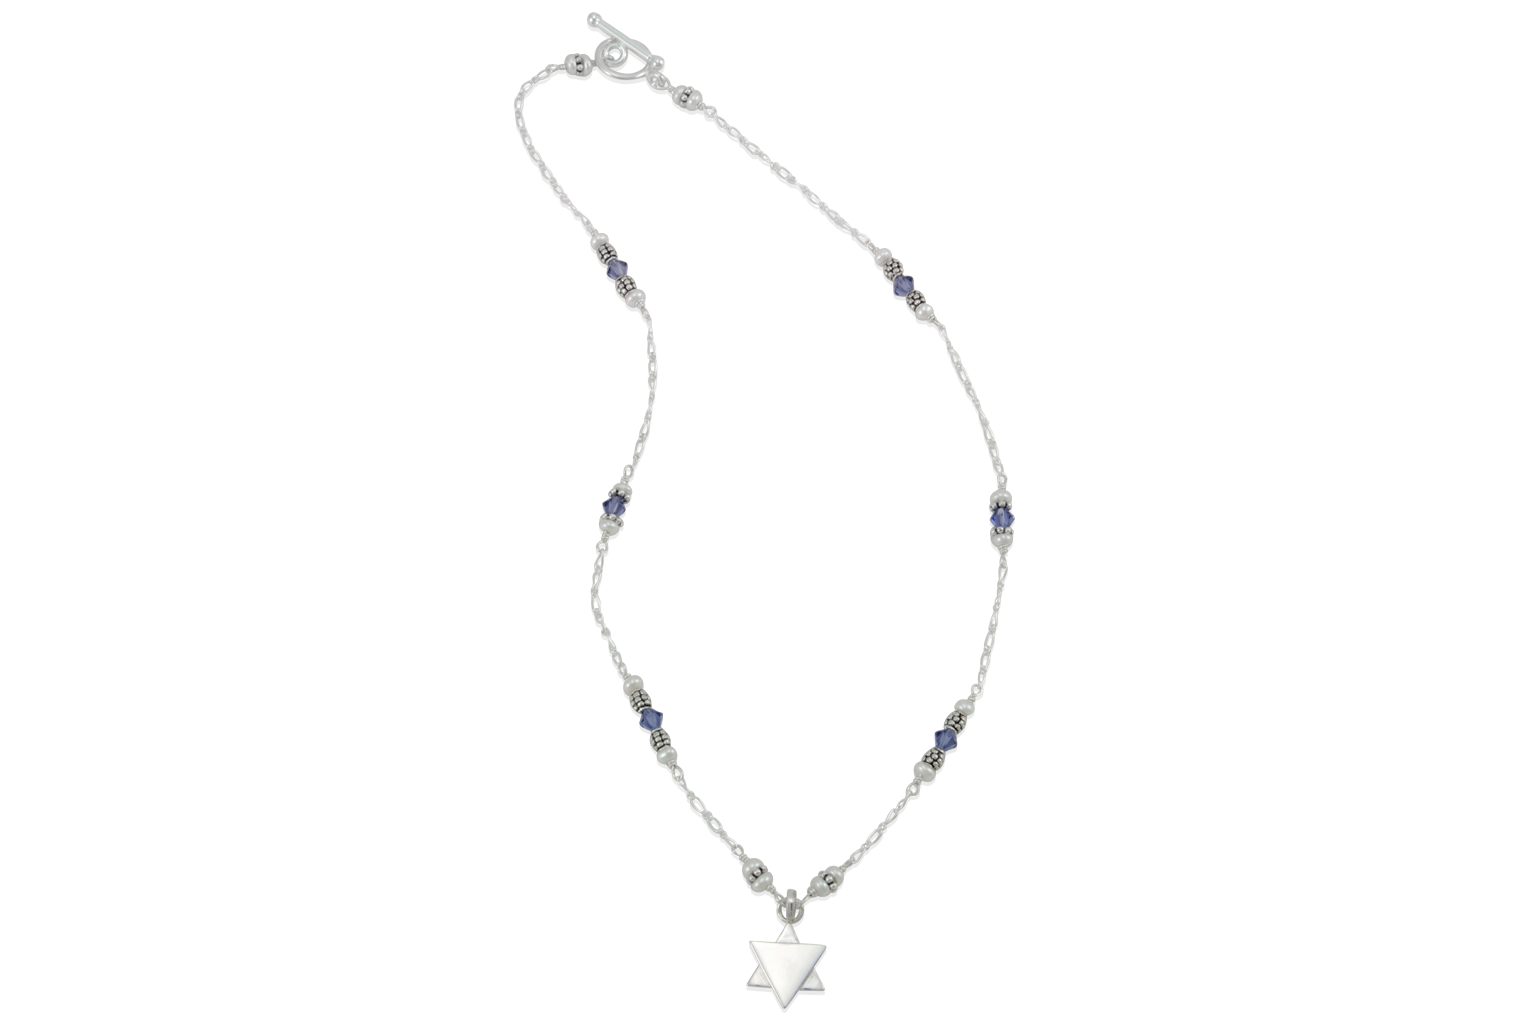 Star of david necklace clipart graphic black and white Star Of David Necklace - clipart graphic black and white